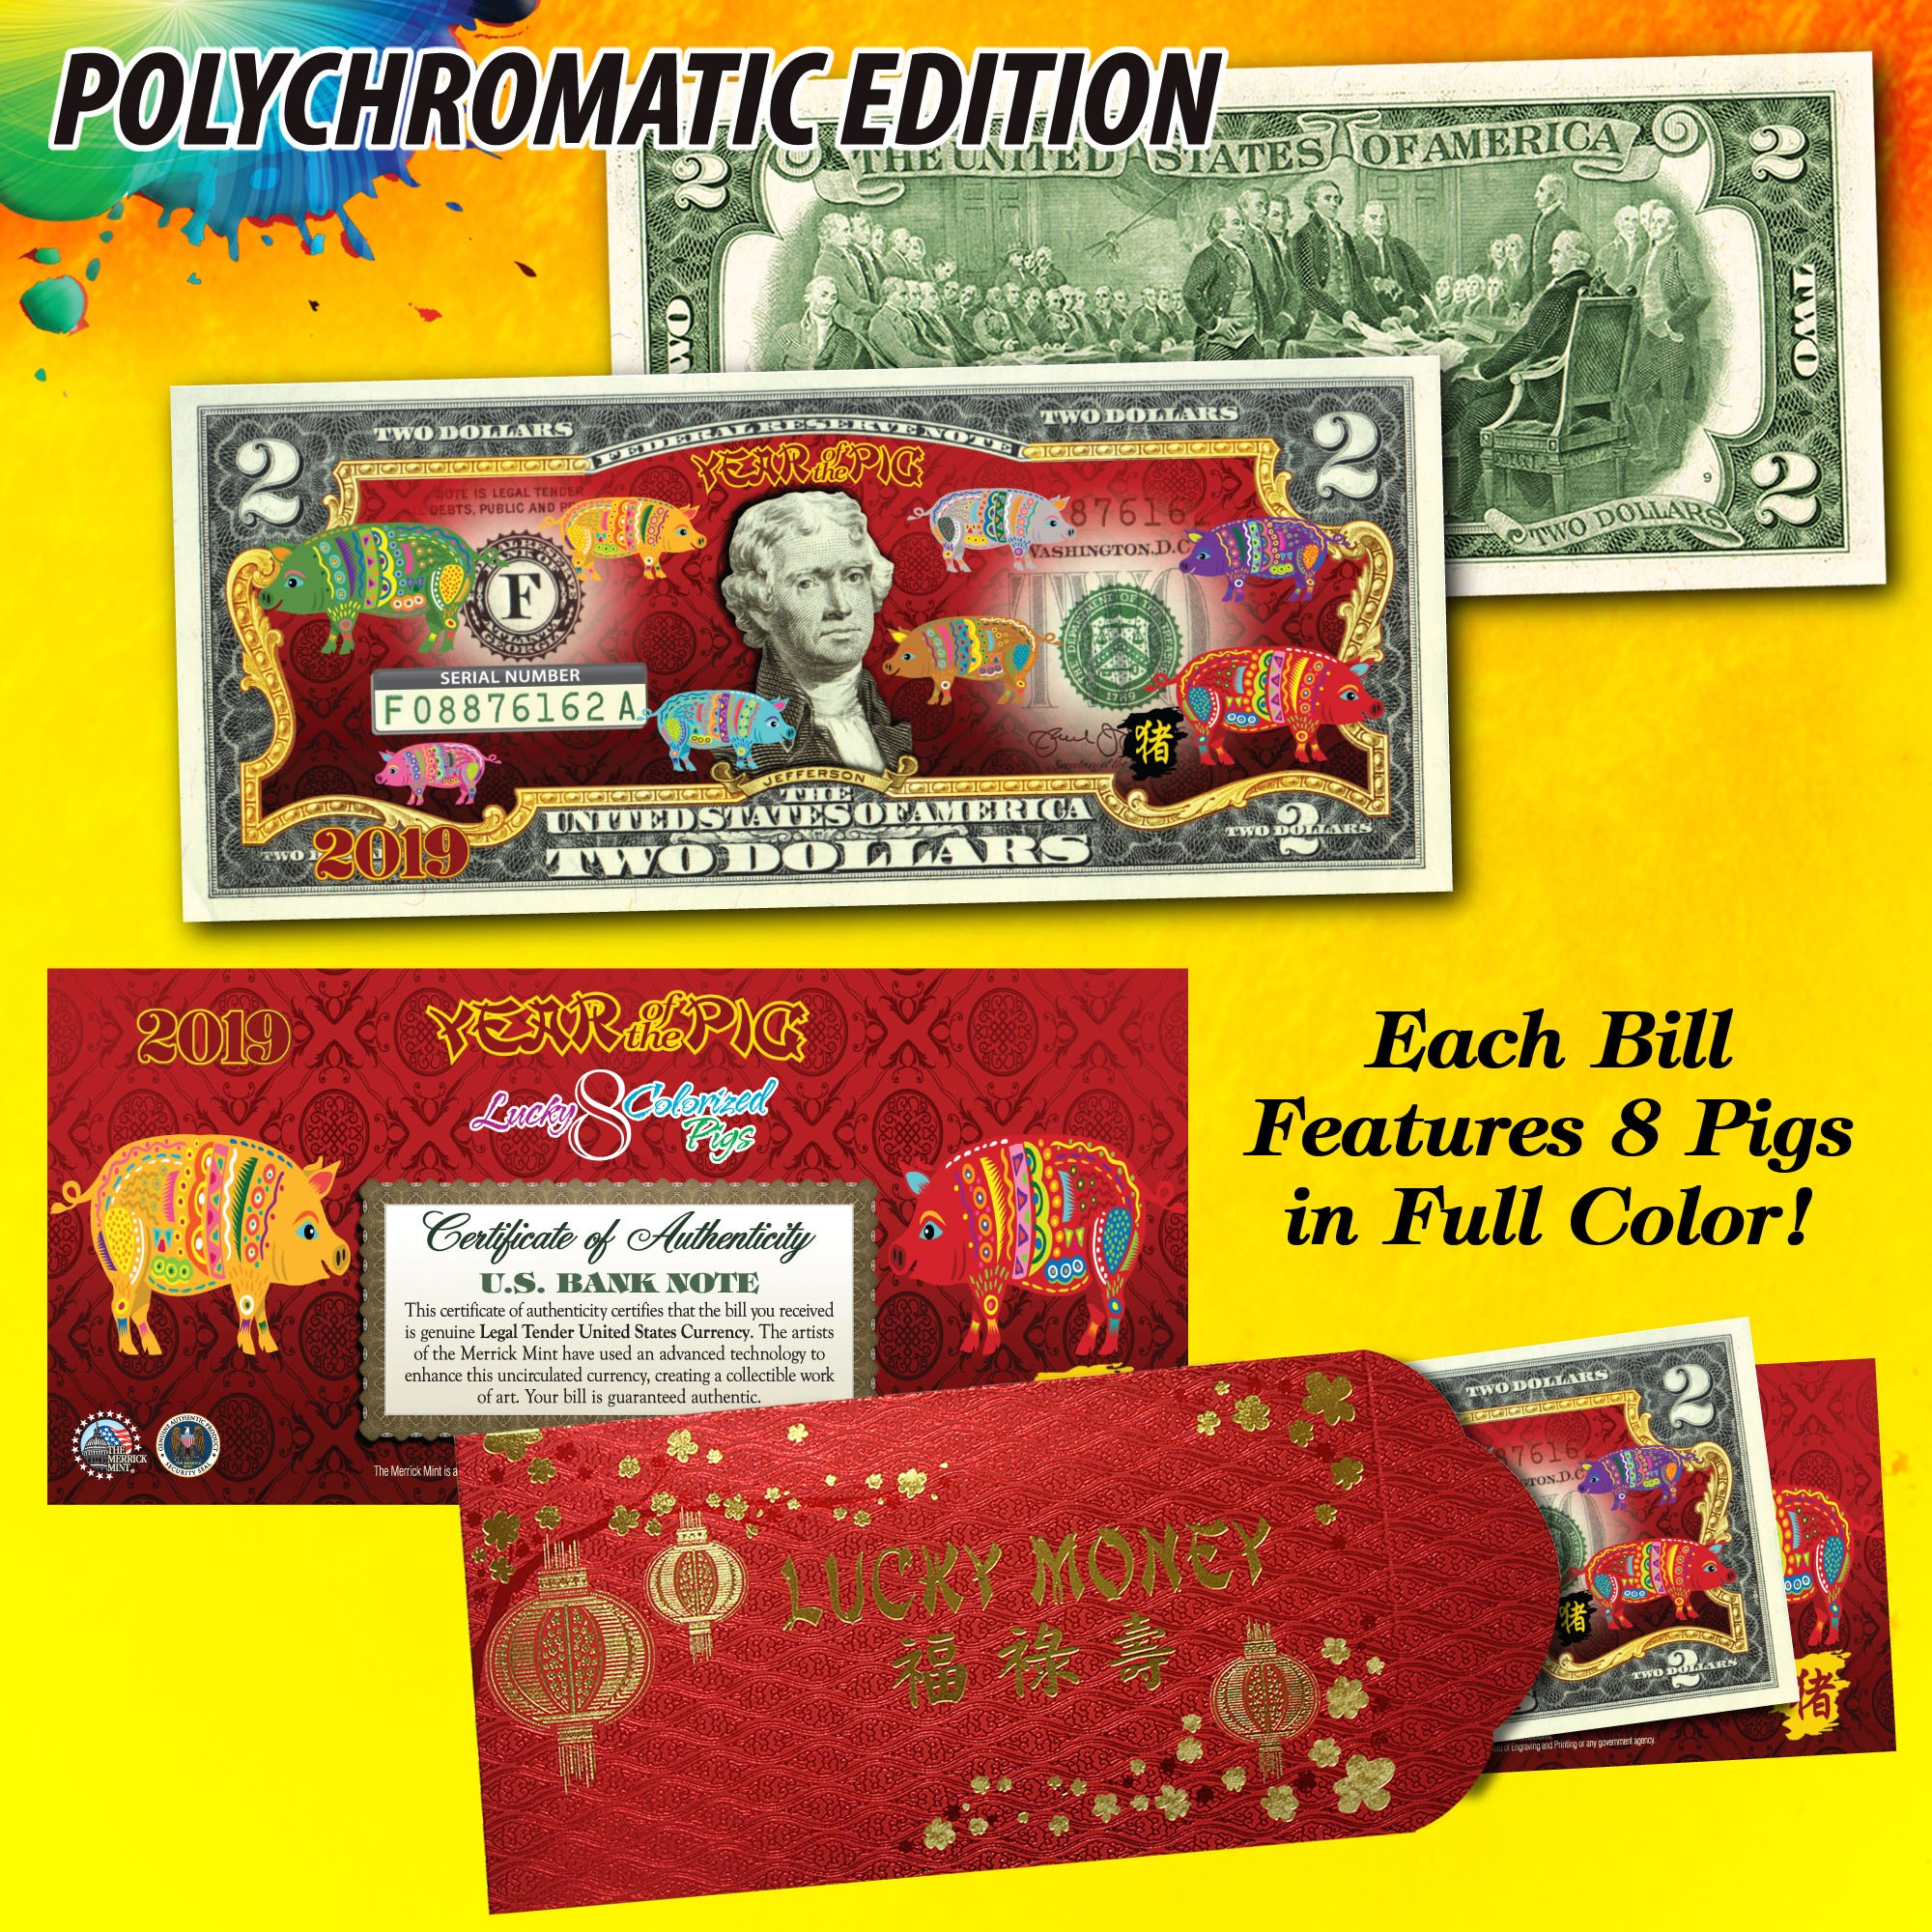 2017 Chinese Lunar CNY US $1 Bill YEAR OF THE ROOSTER Gold Hologram Red QTY 10